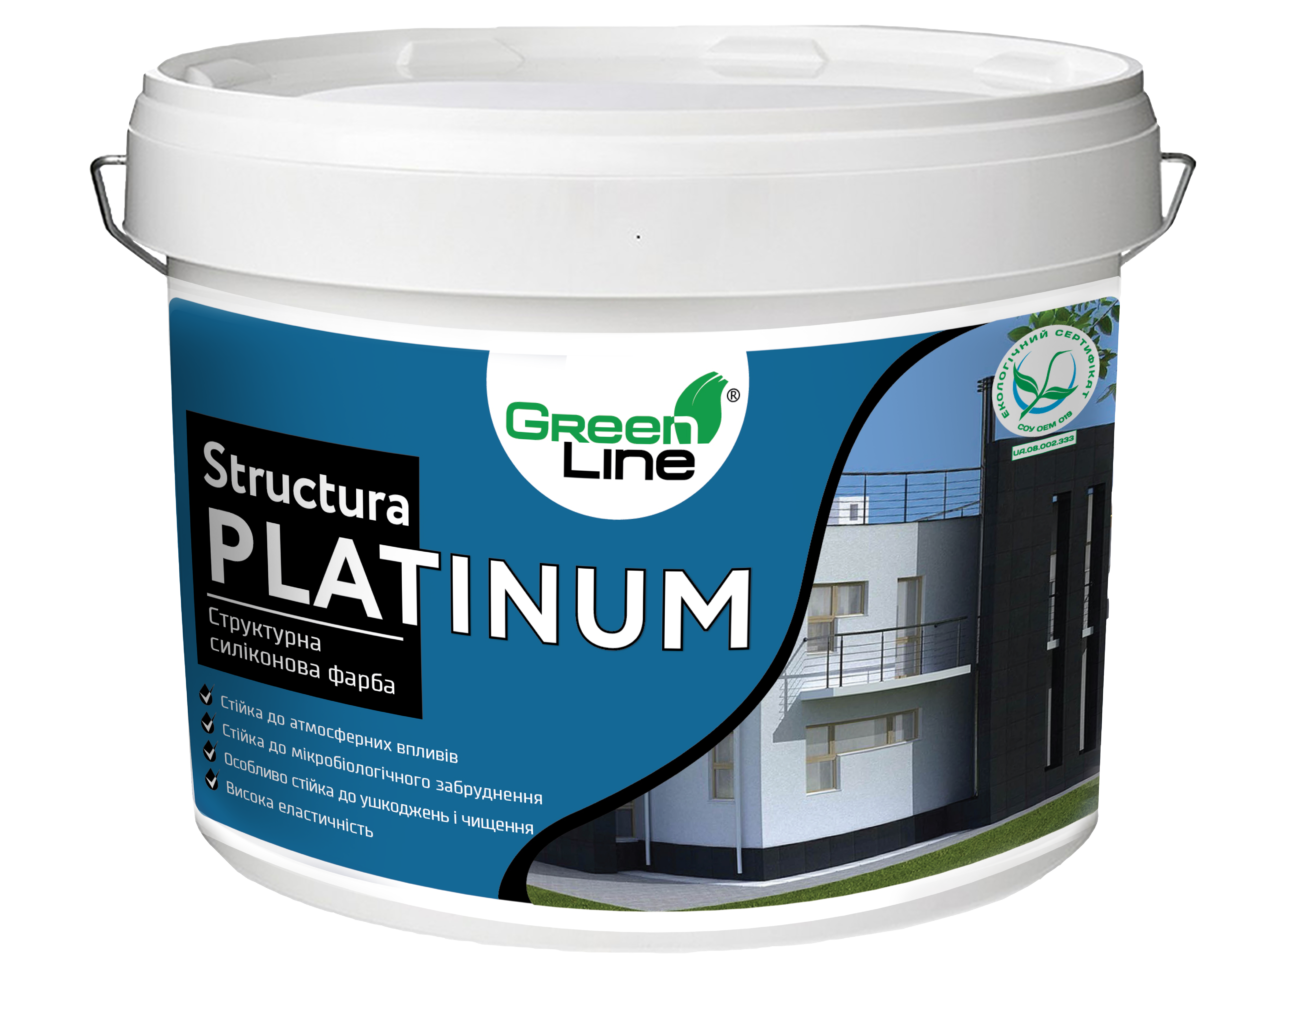 STRUCTURA PLATINUM